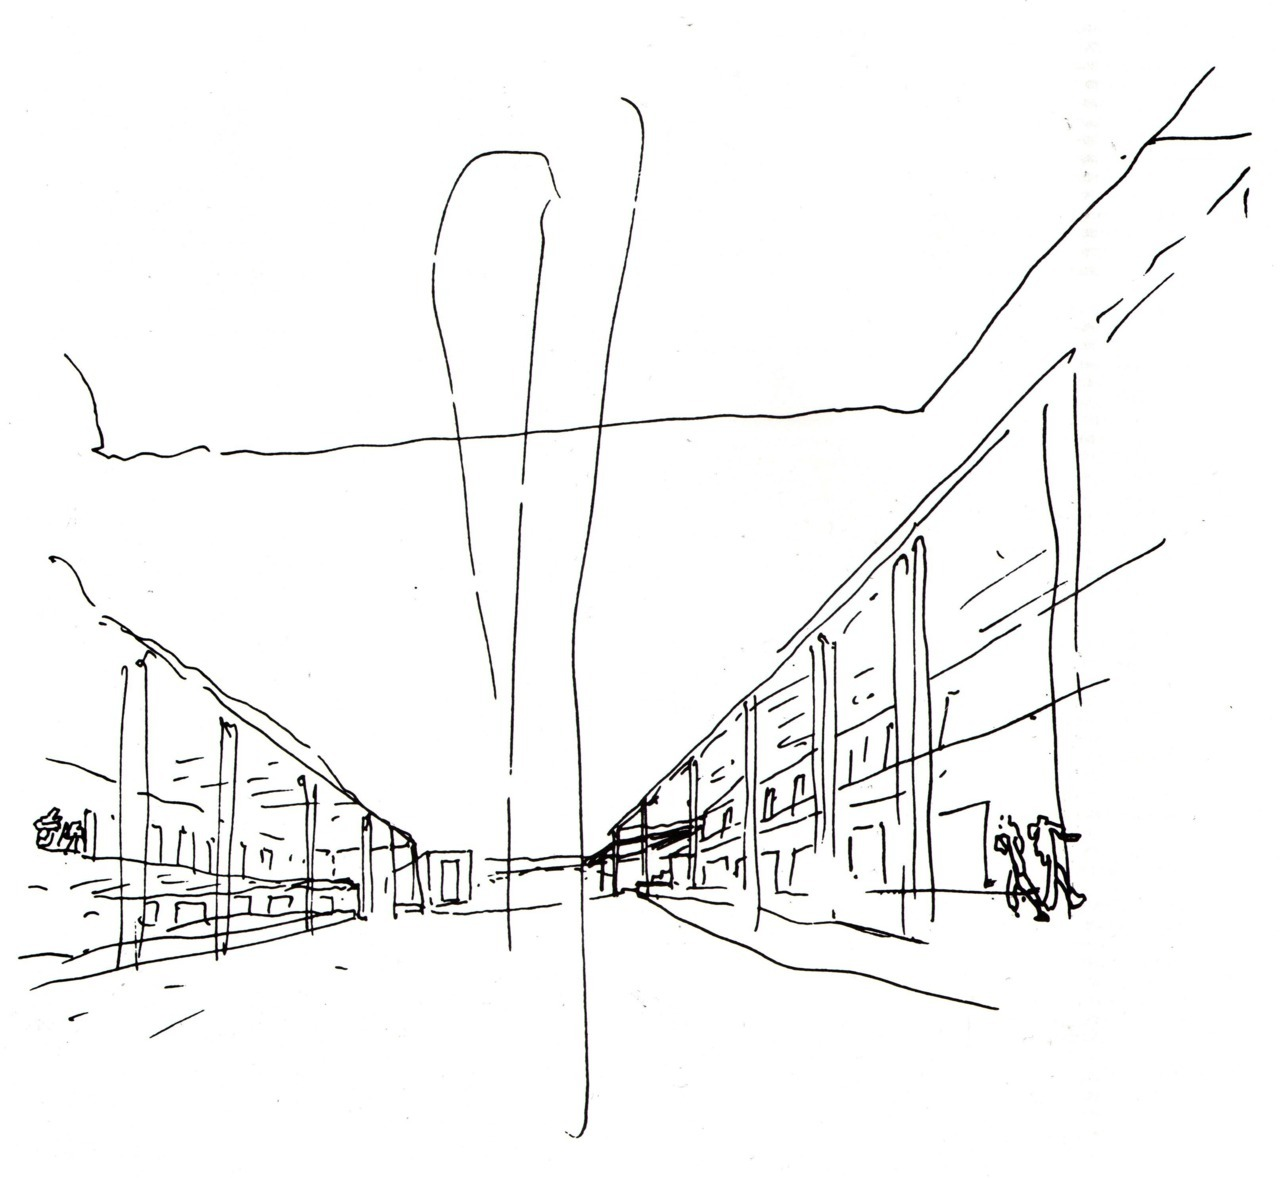 BLACK & WHITE SKETCHES | 016 | ÁLVARO SIZA VIEIRA